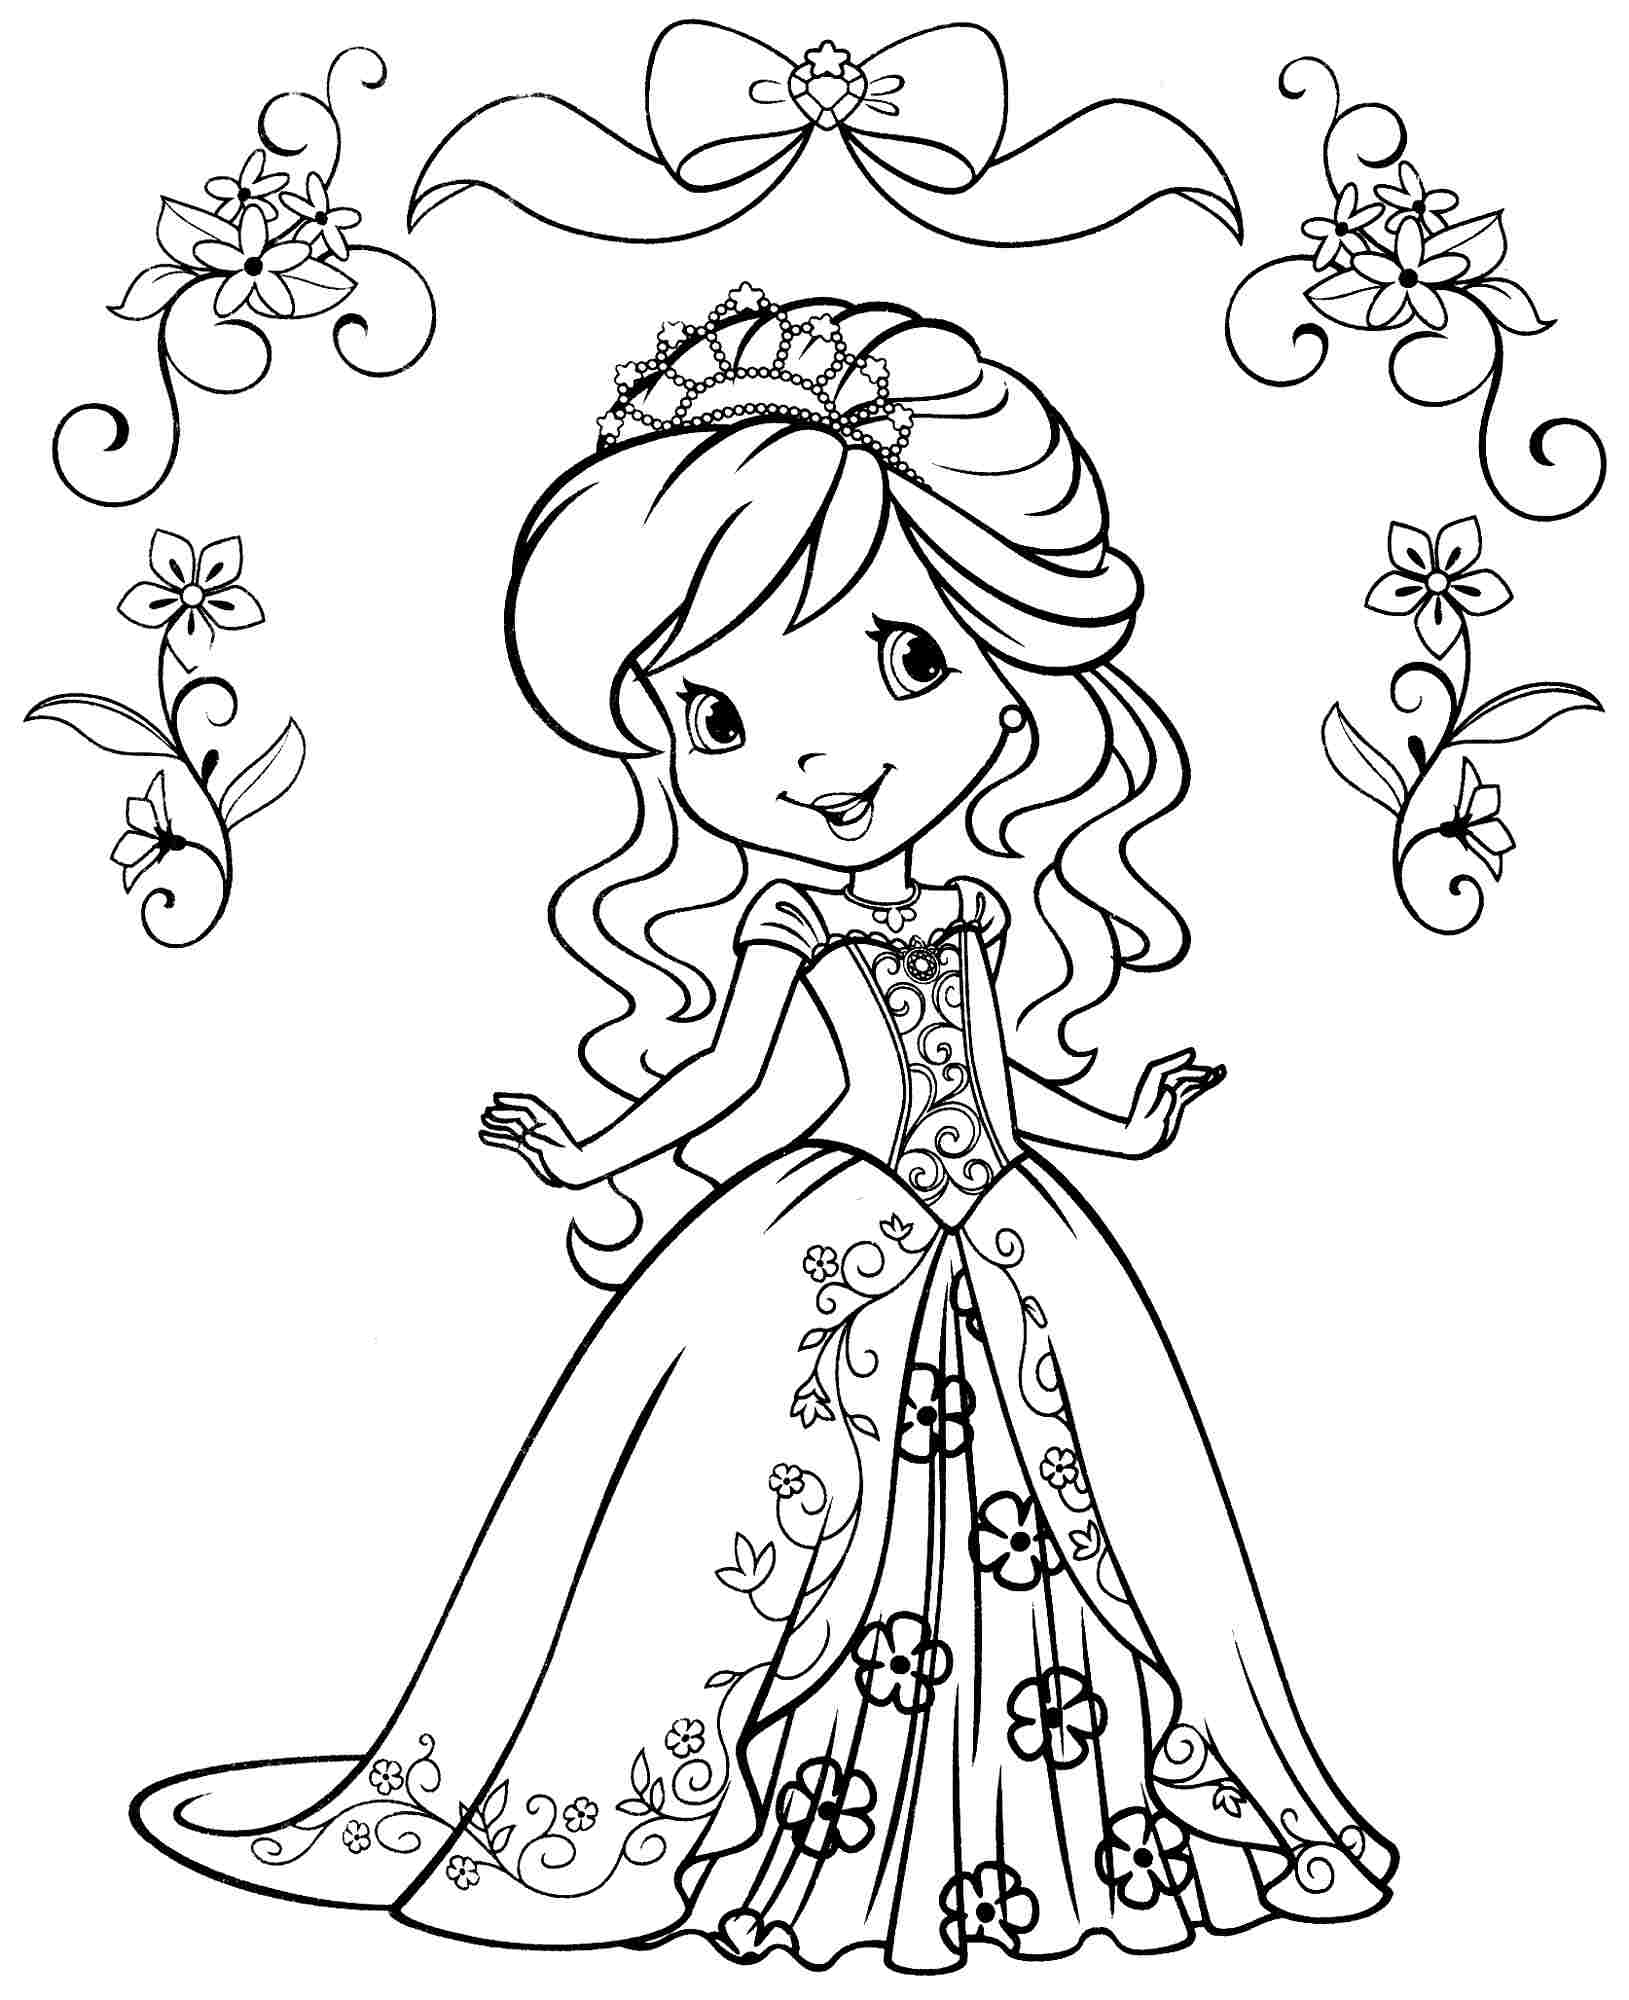 Strawberry Shortcake Valentine Coloring Pages Download And Print